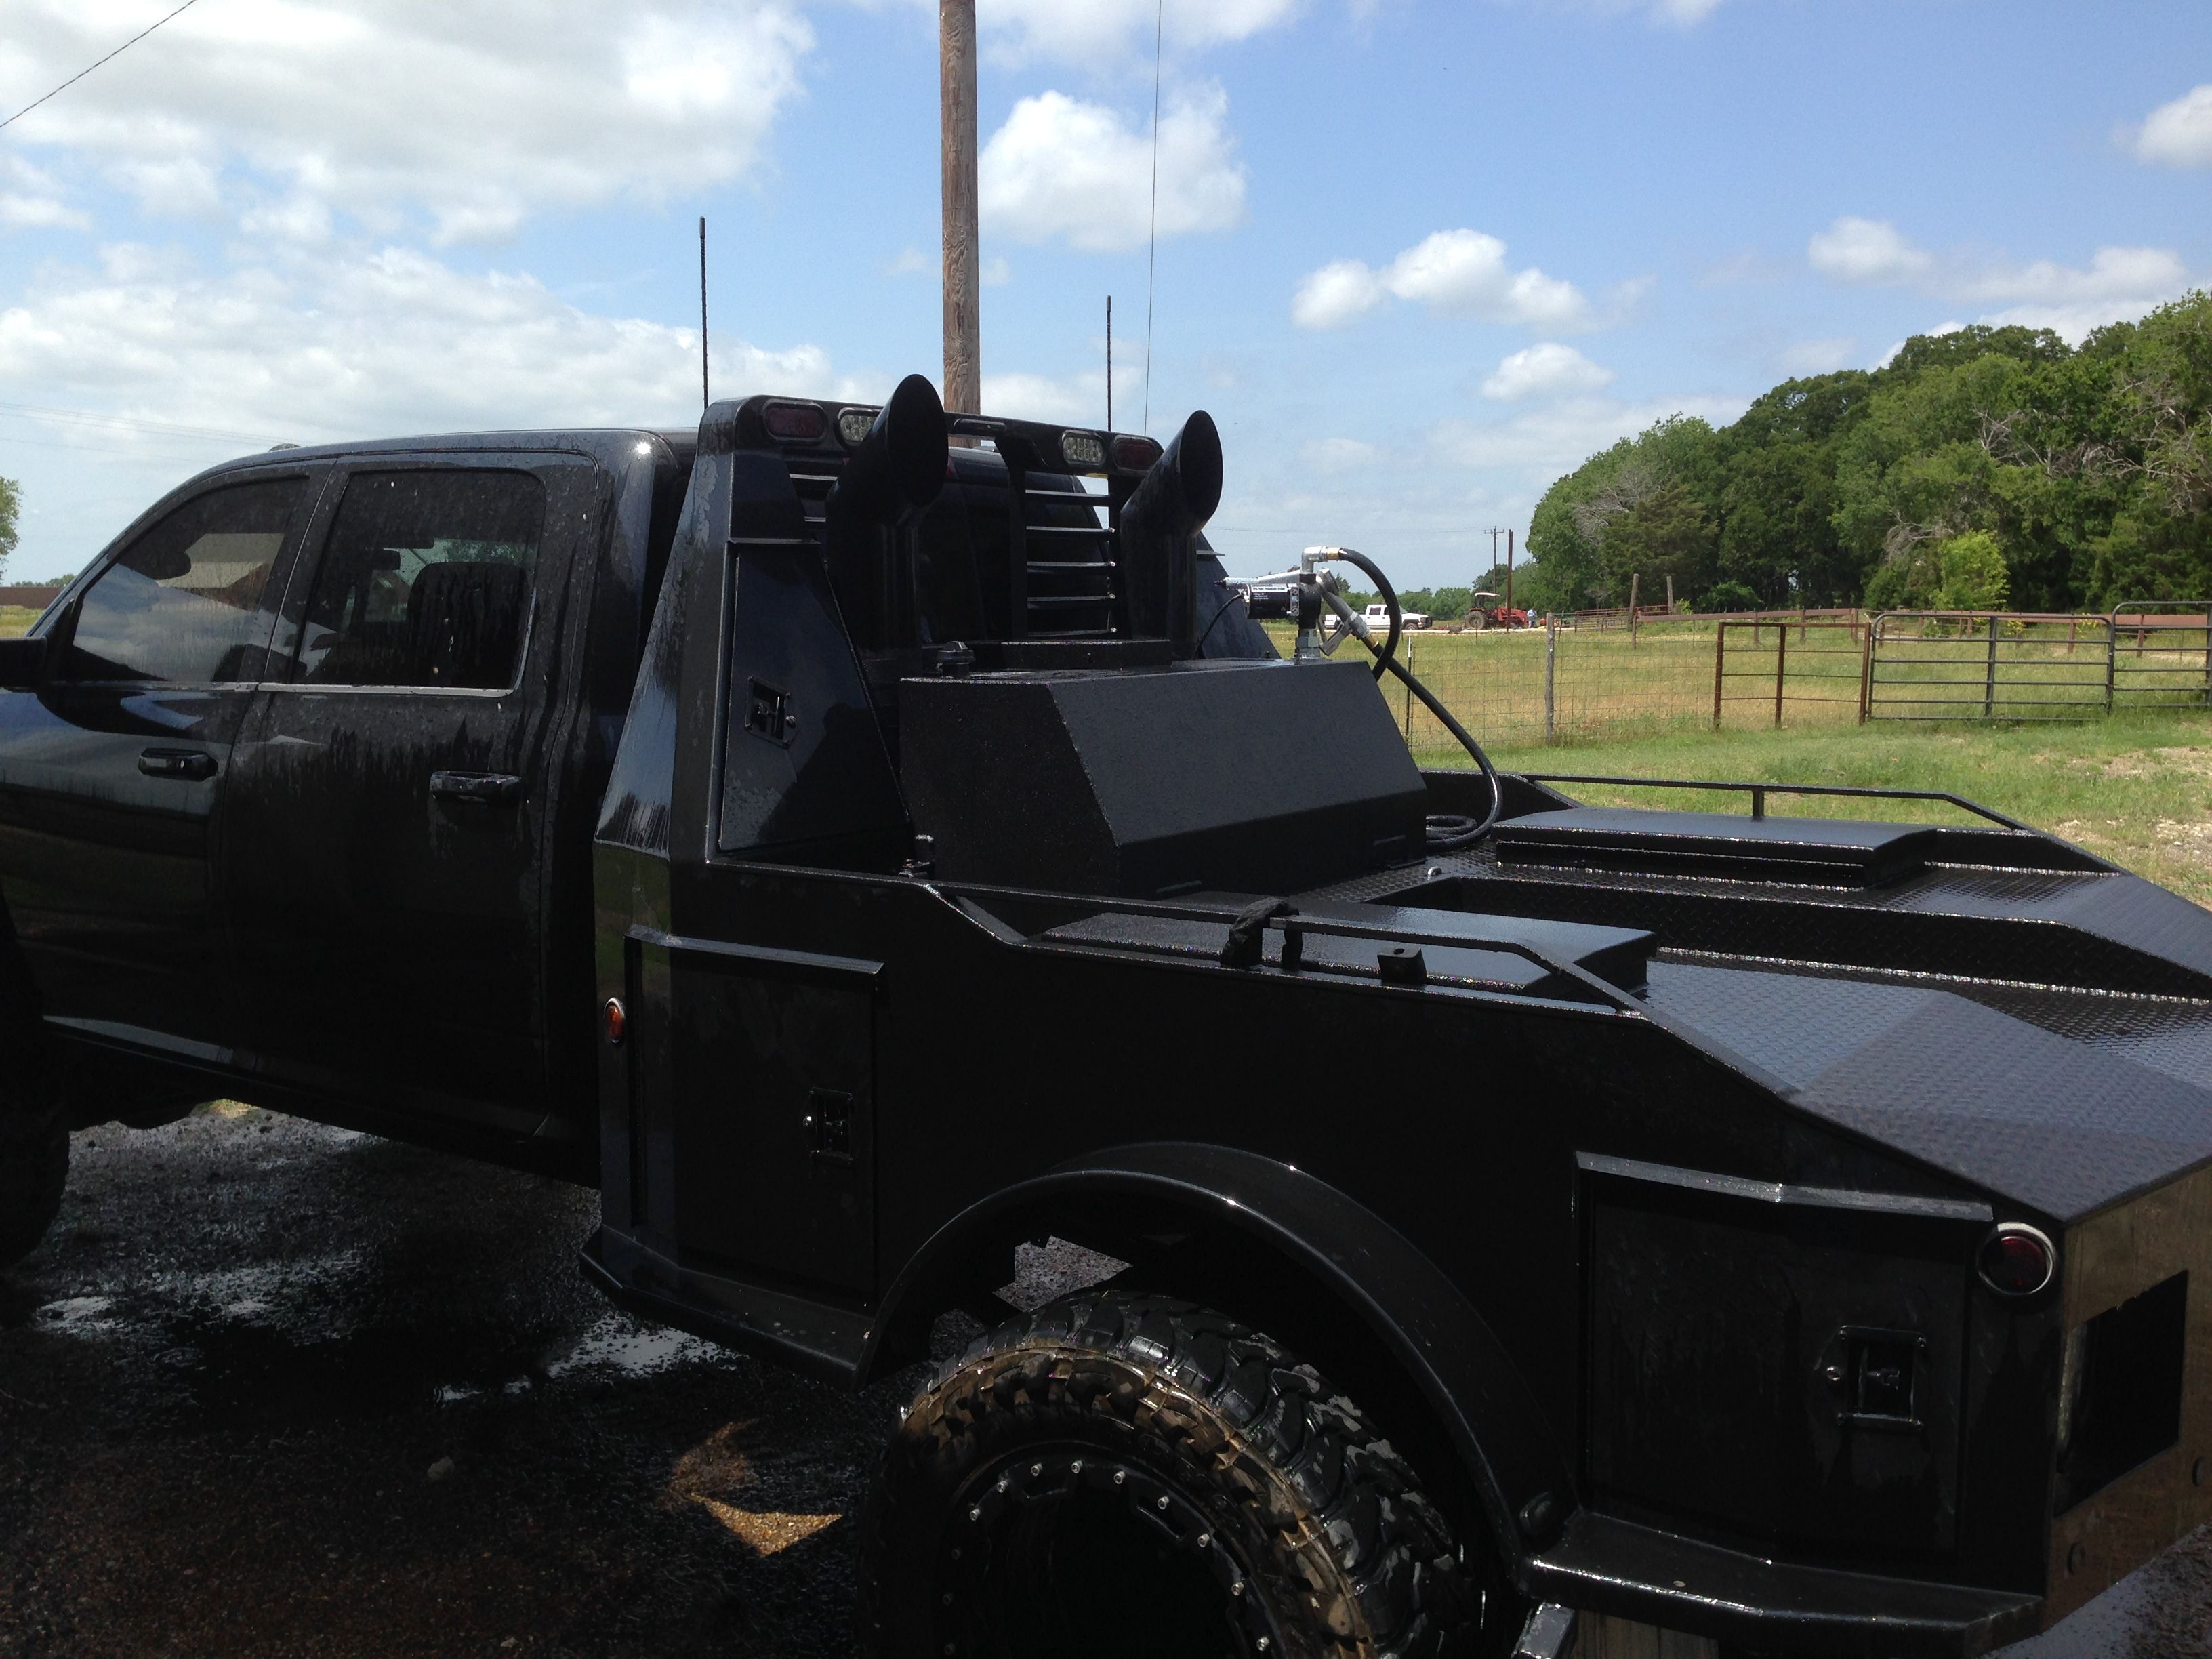 monster auxiliary fuel tank truck rack things pinterest truck bed black truck and. Black Bedroom Furniture Sets. Home Design Ideas